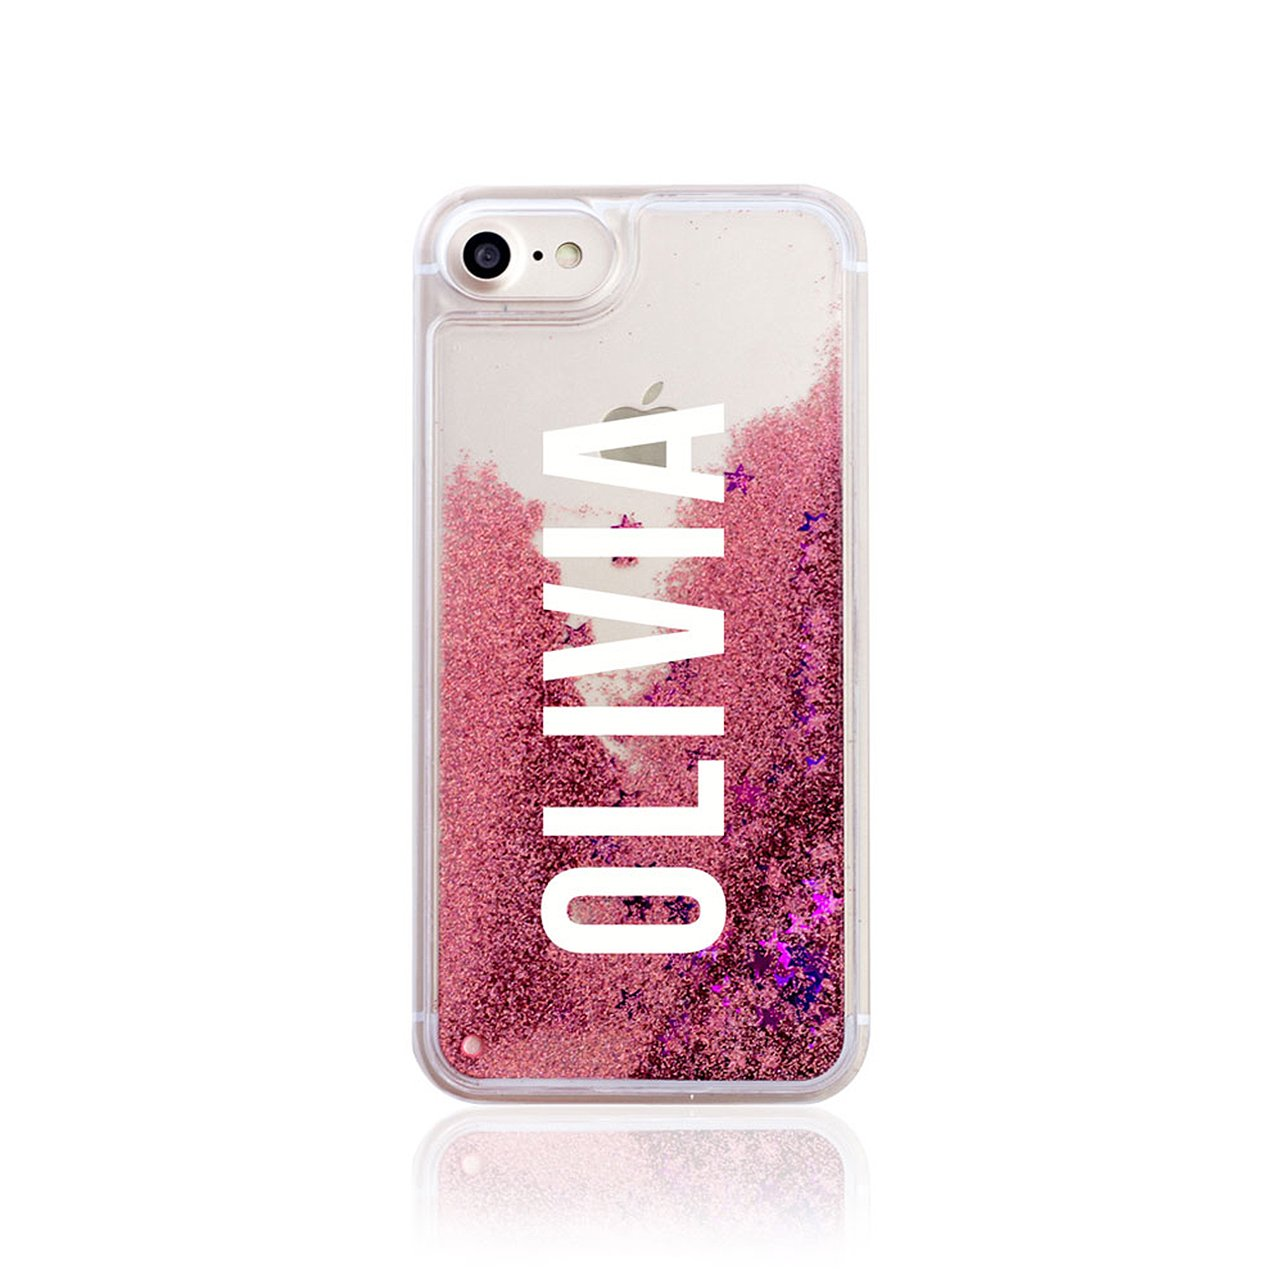 personalised iphone 6s case amazon co ukiphone 6 \u0026 6s tirita personalised real liquid glitter hard case bling rose gold pink handwriting